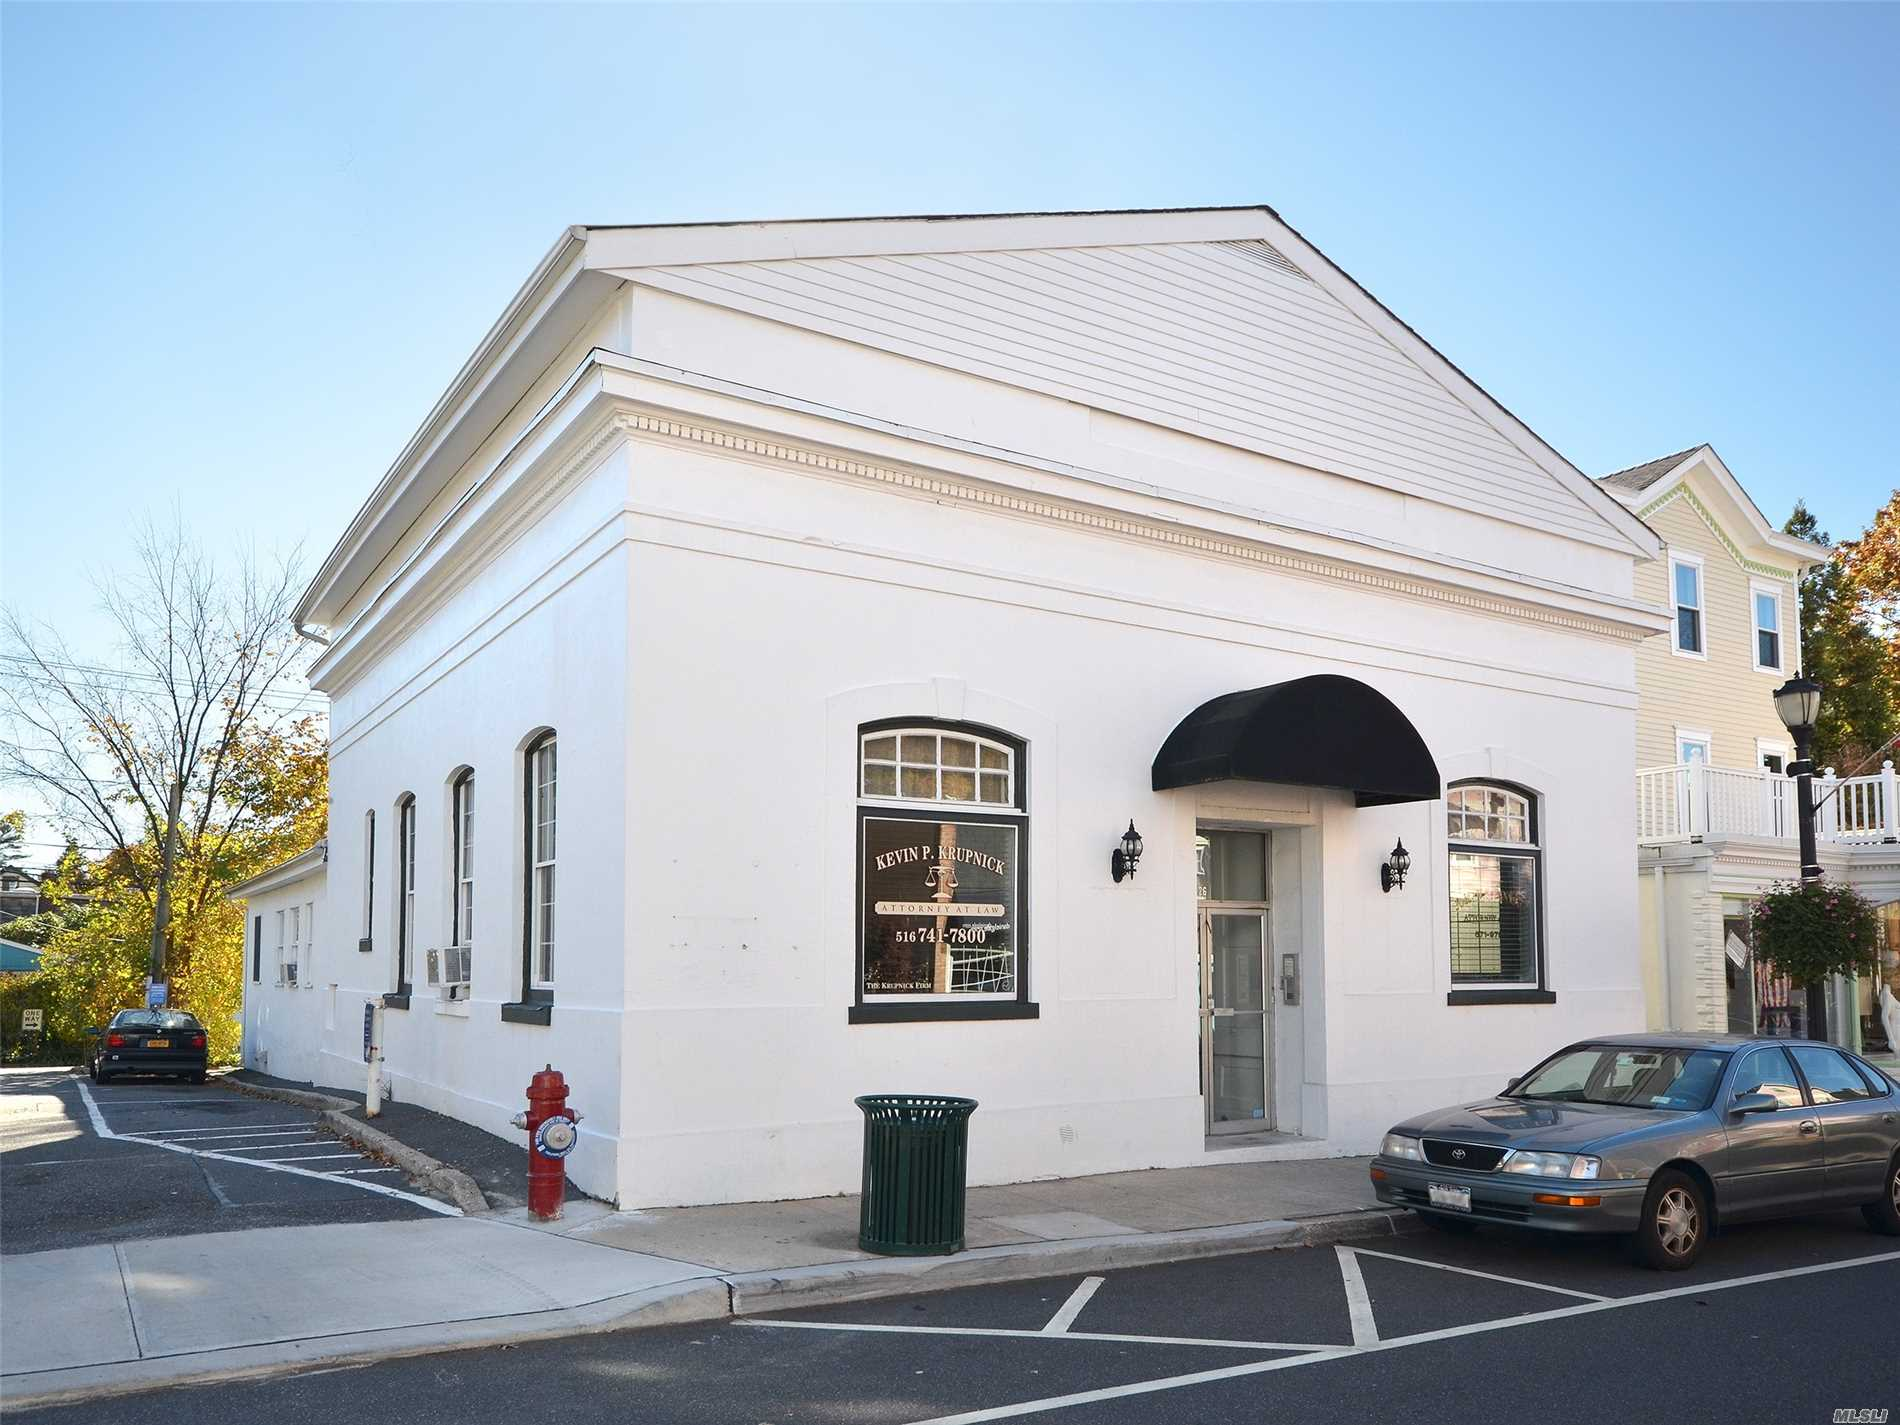 Office Space Available In Charming Sea Cliff Office Building. $750/Mo Includes All Utilities. Bathrooms And Common Area Recently Renovated.